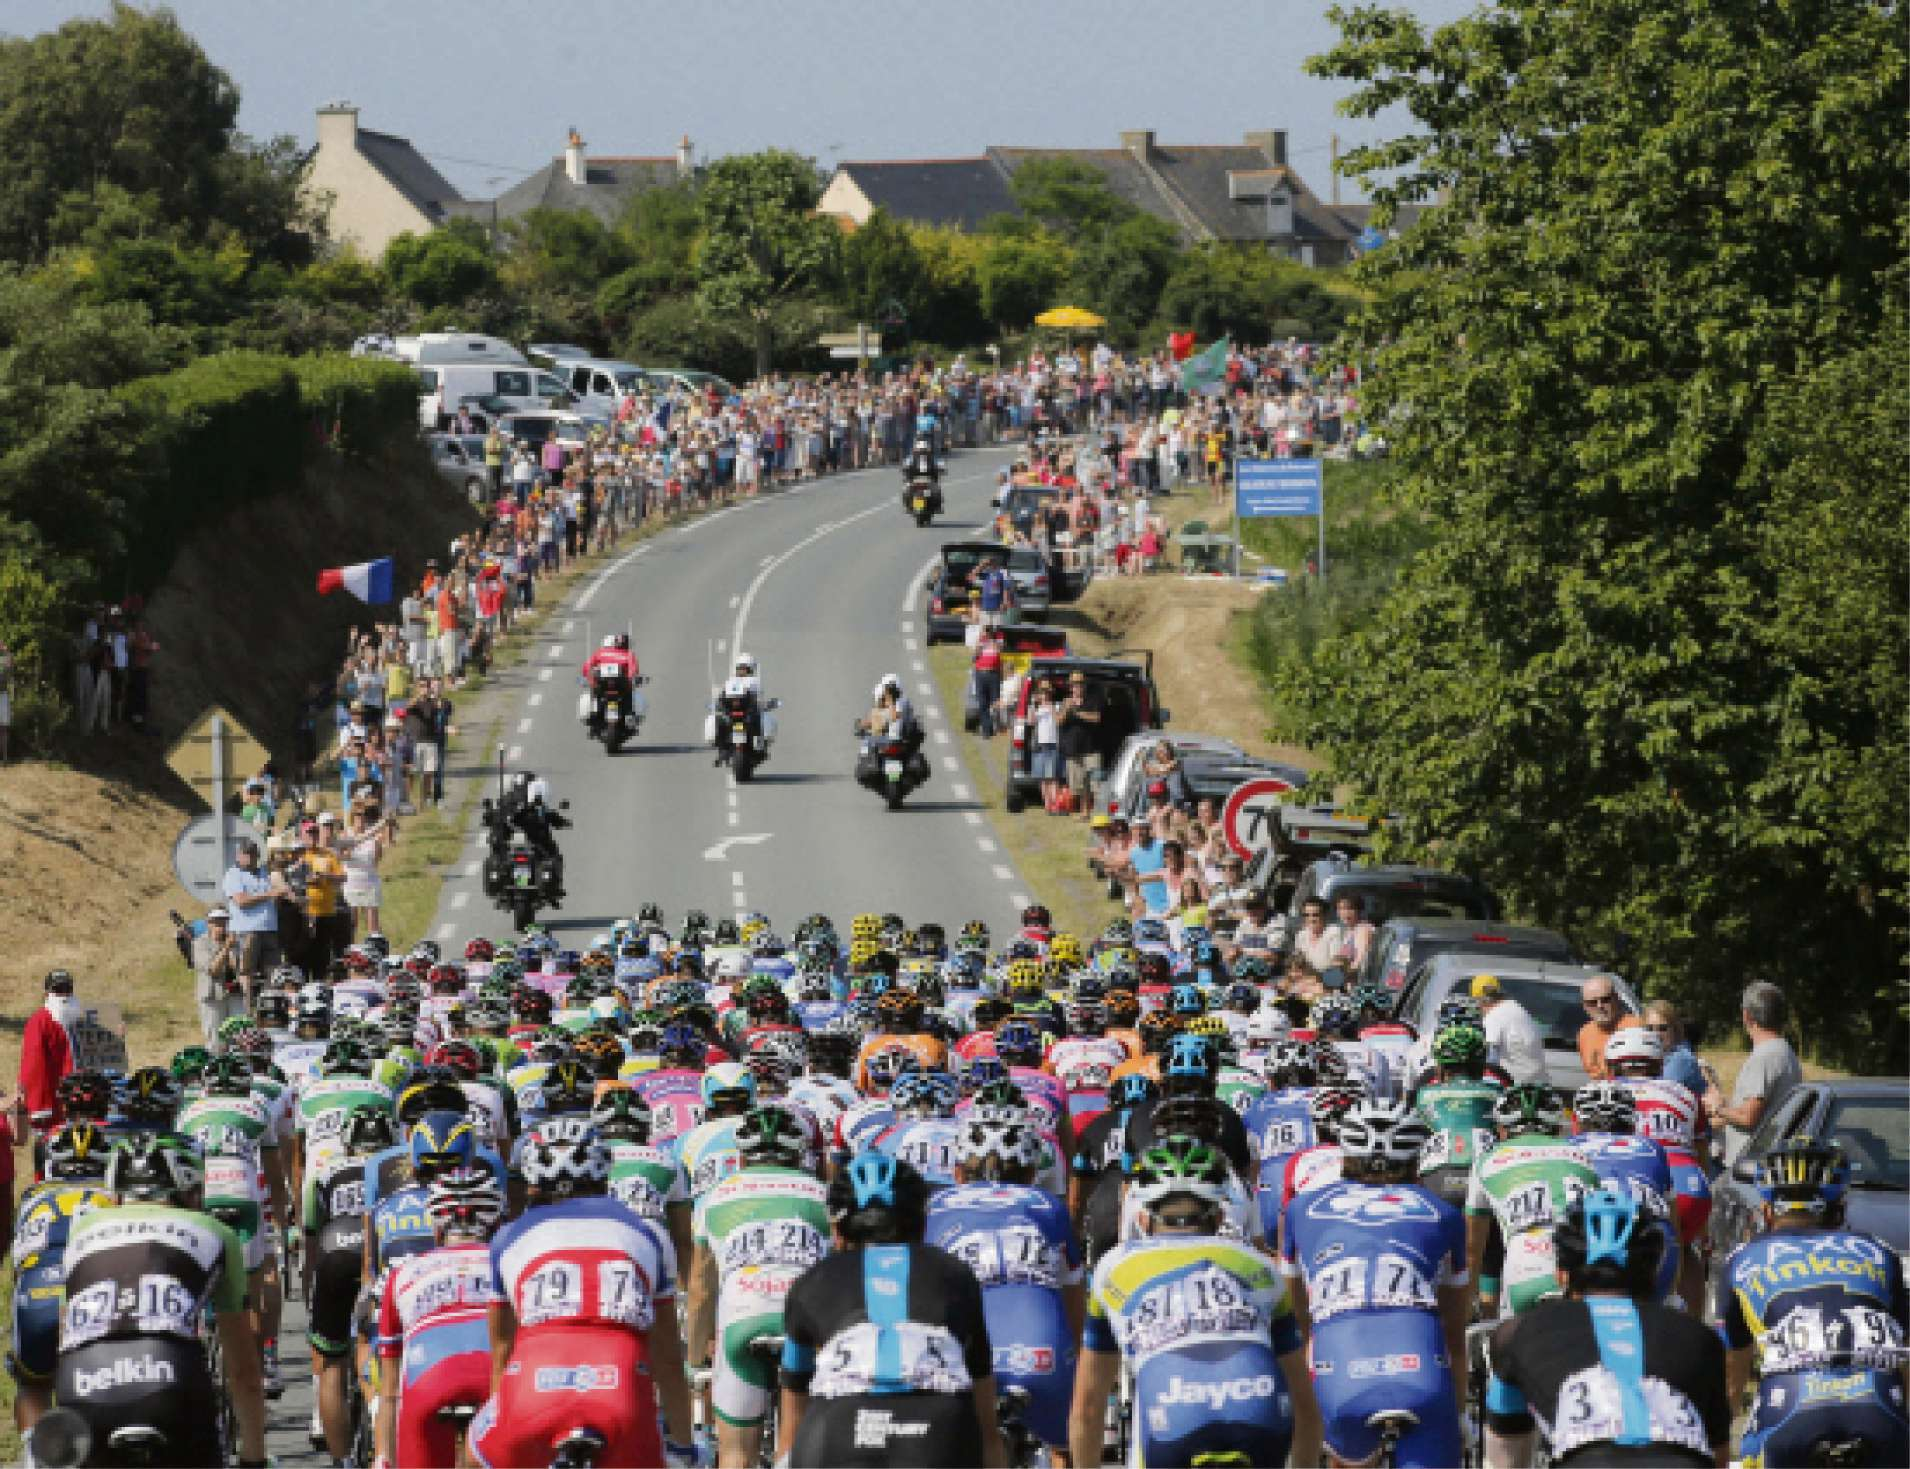 TRAFFIC CHAOS: Tour de France riders will descend on the Yorkshire Dales on July 5.